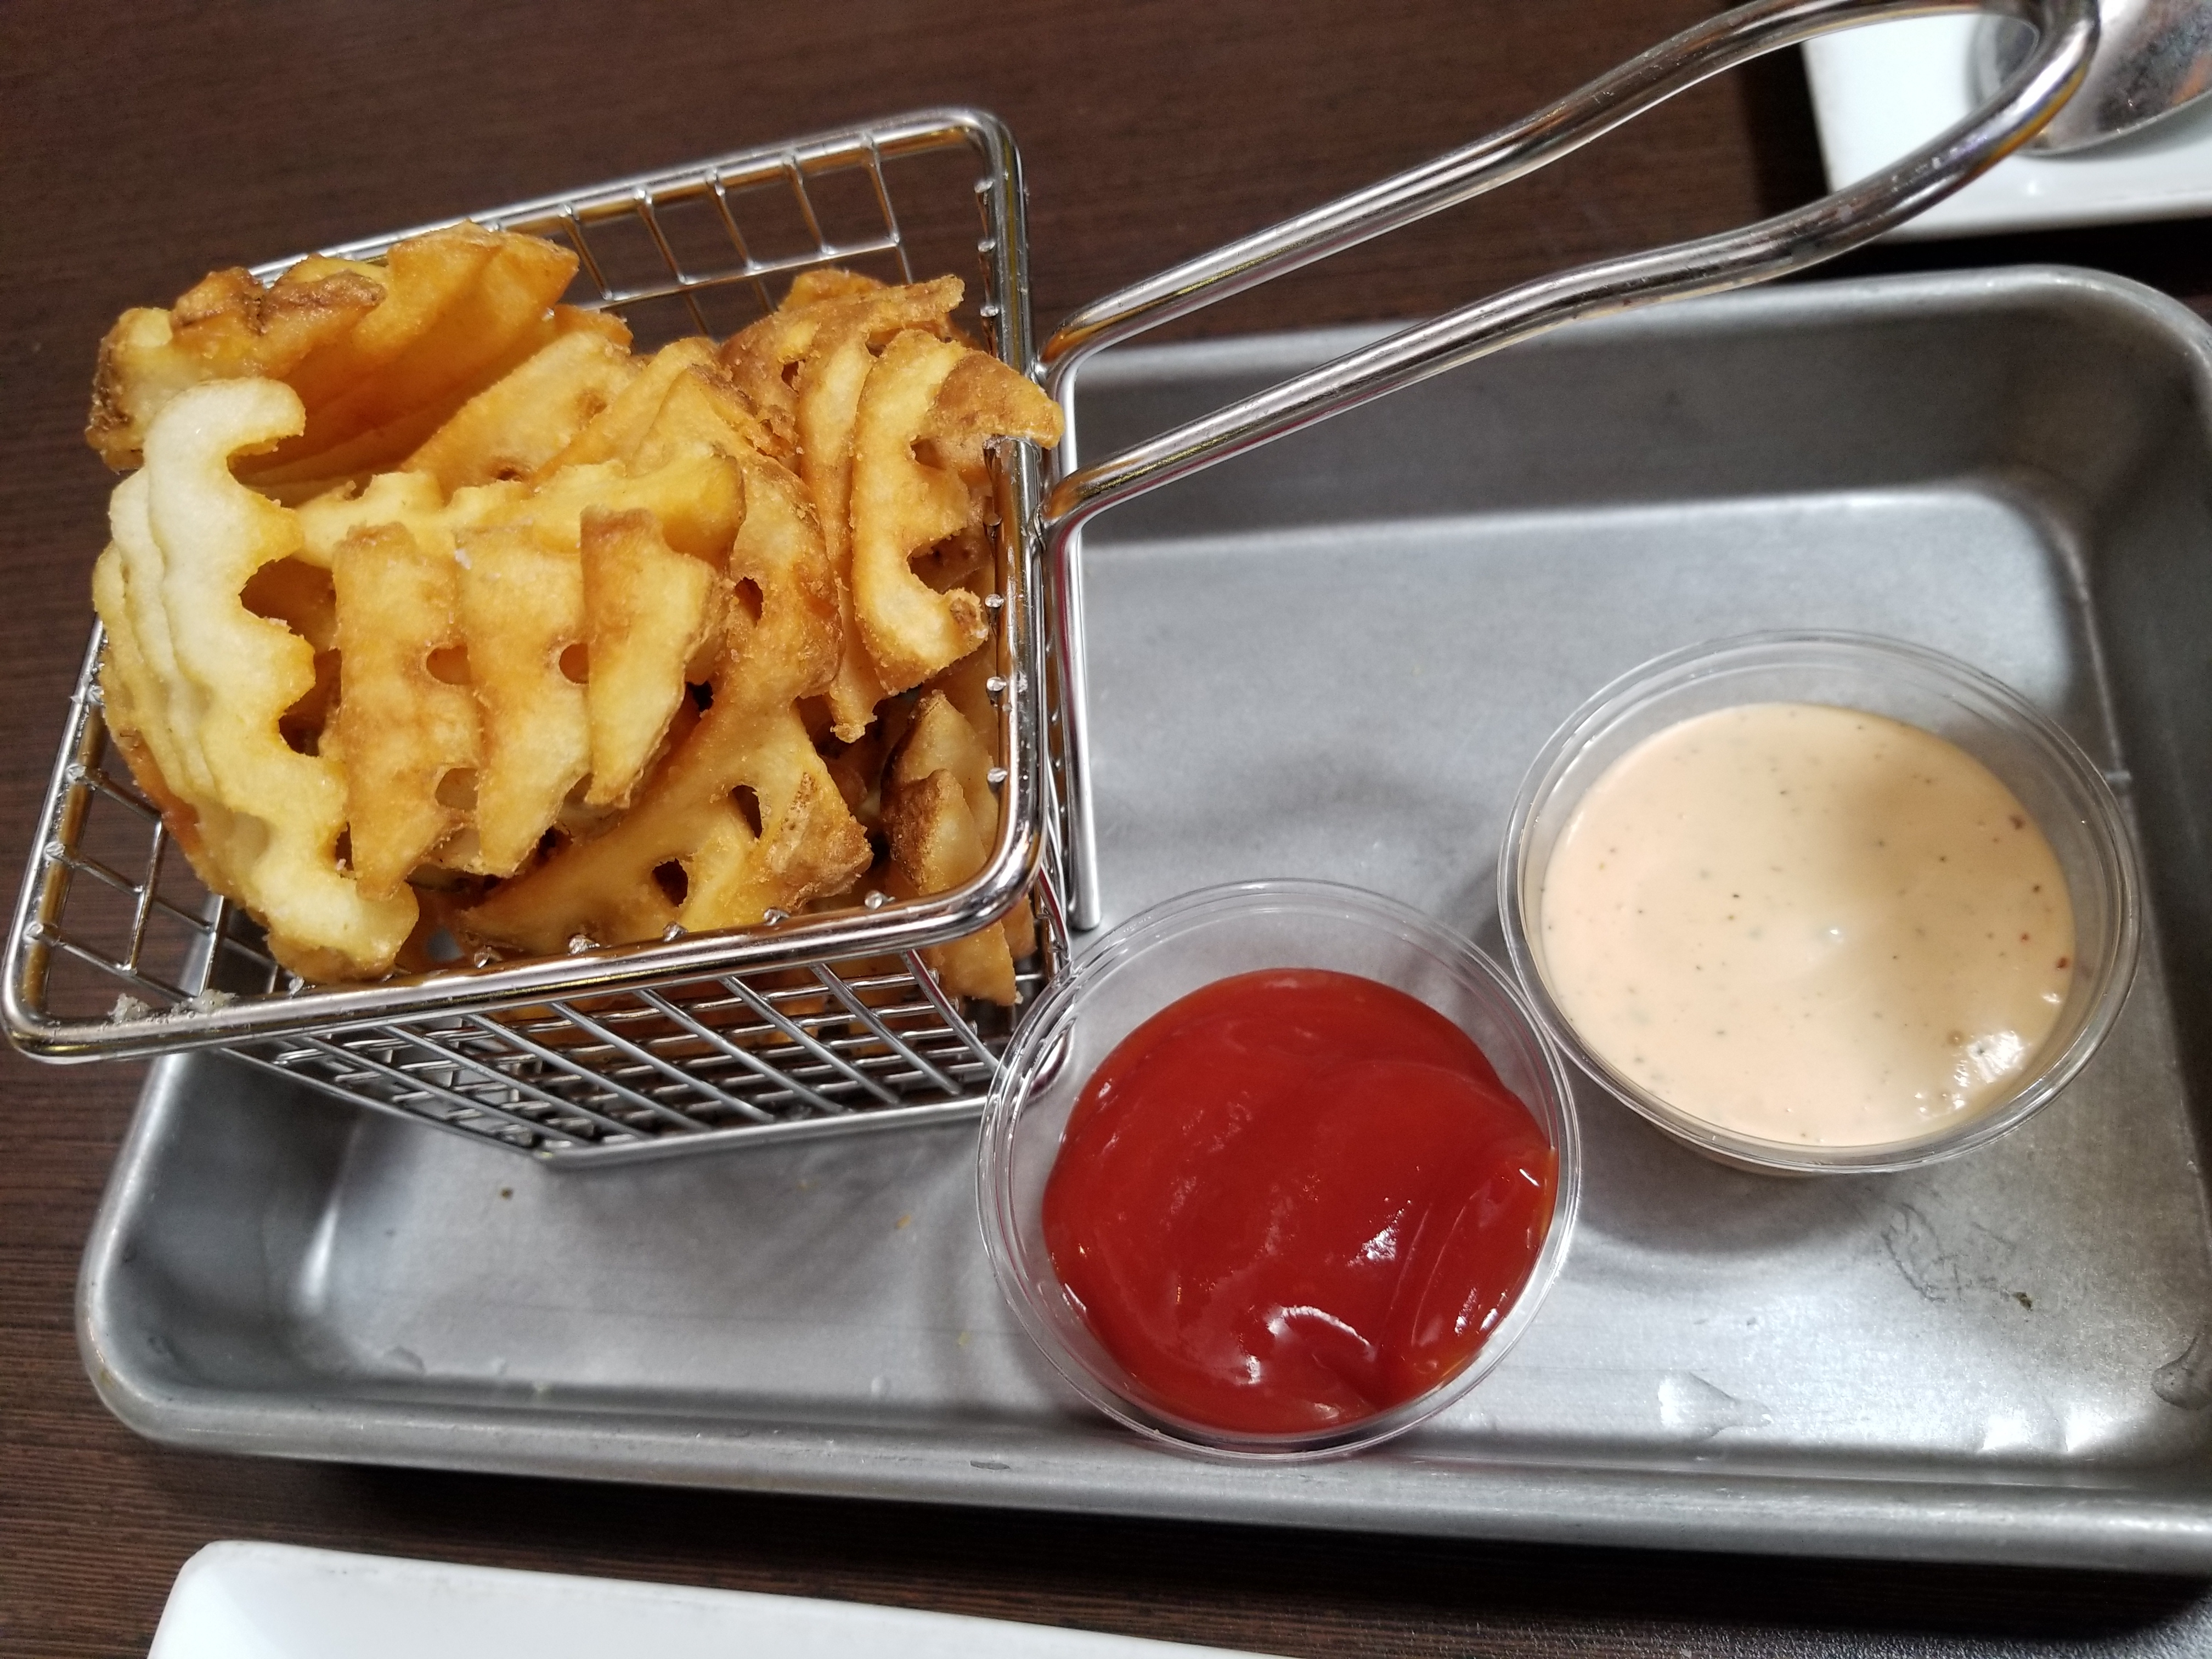 Waffle Fries (the aioli is so good!)